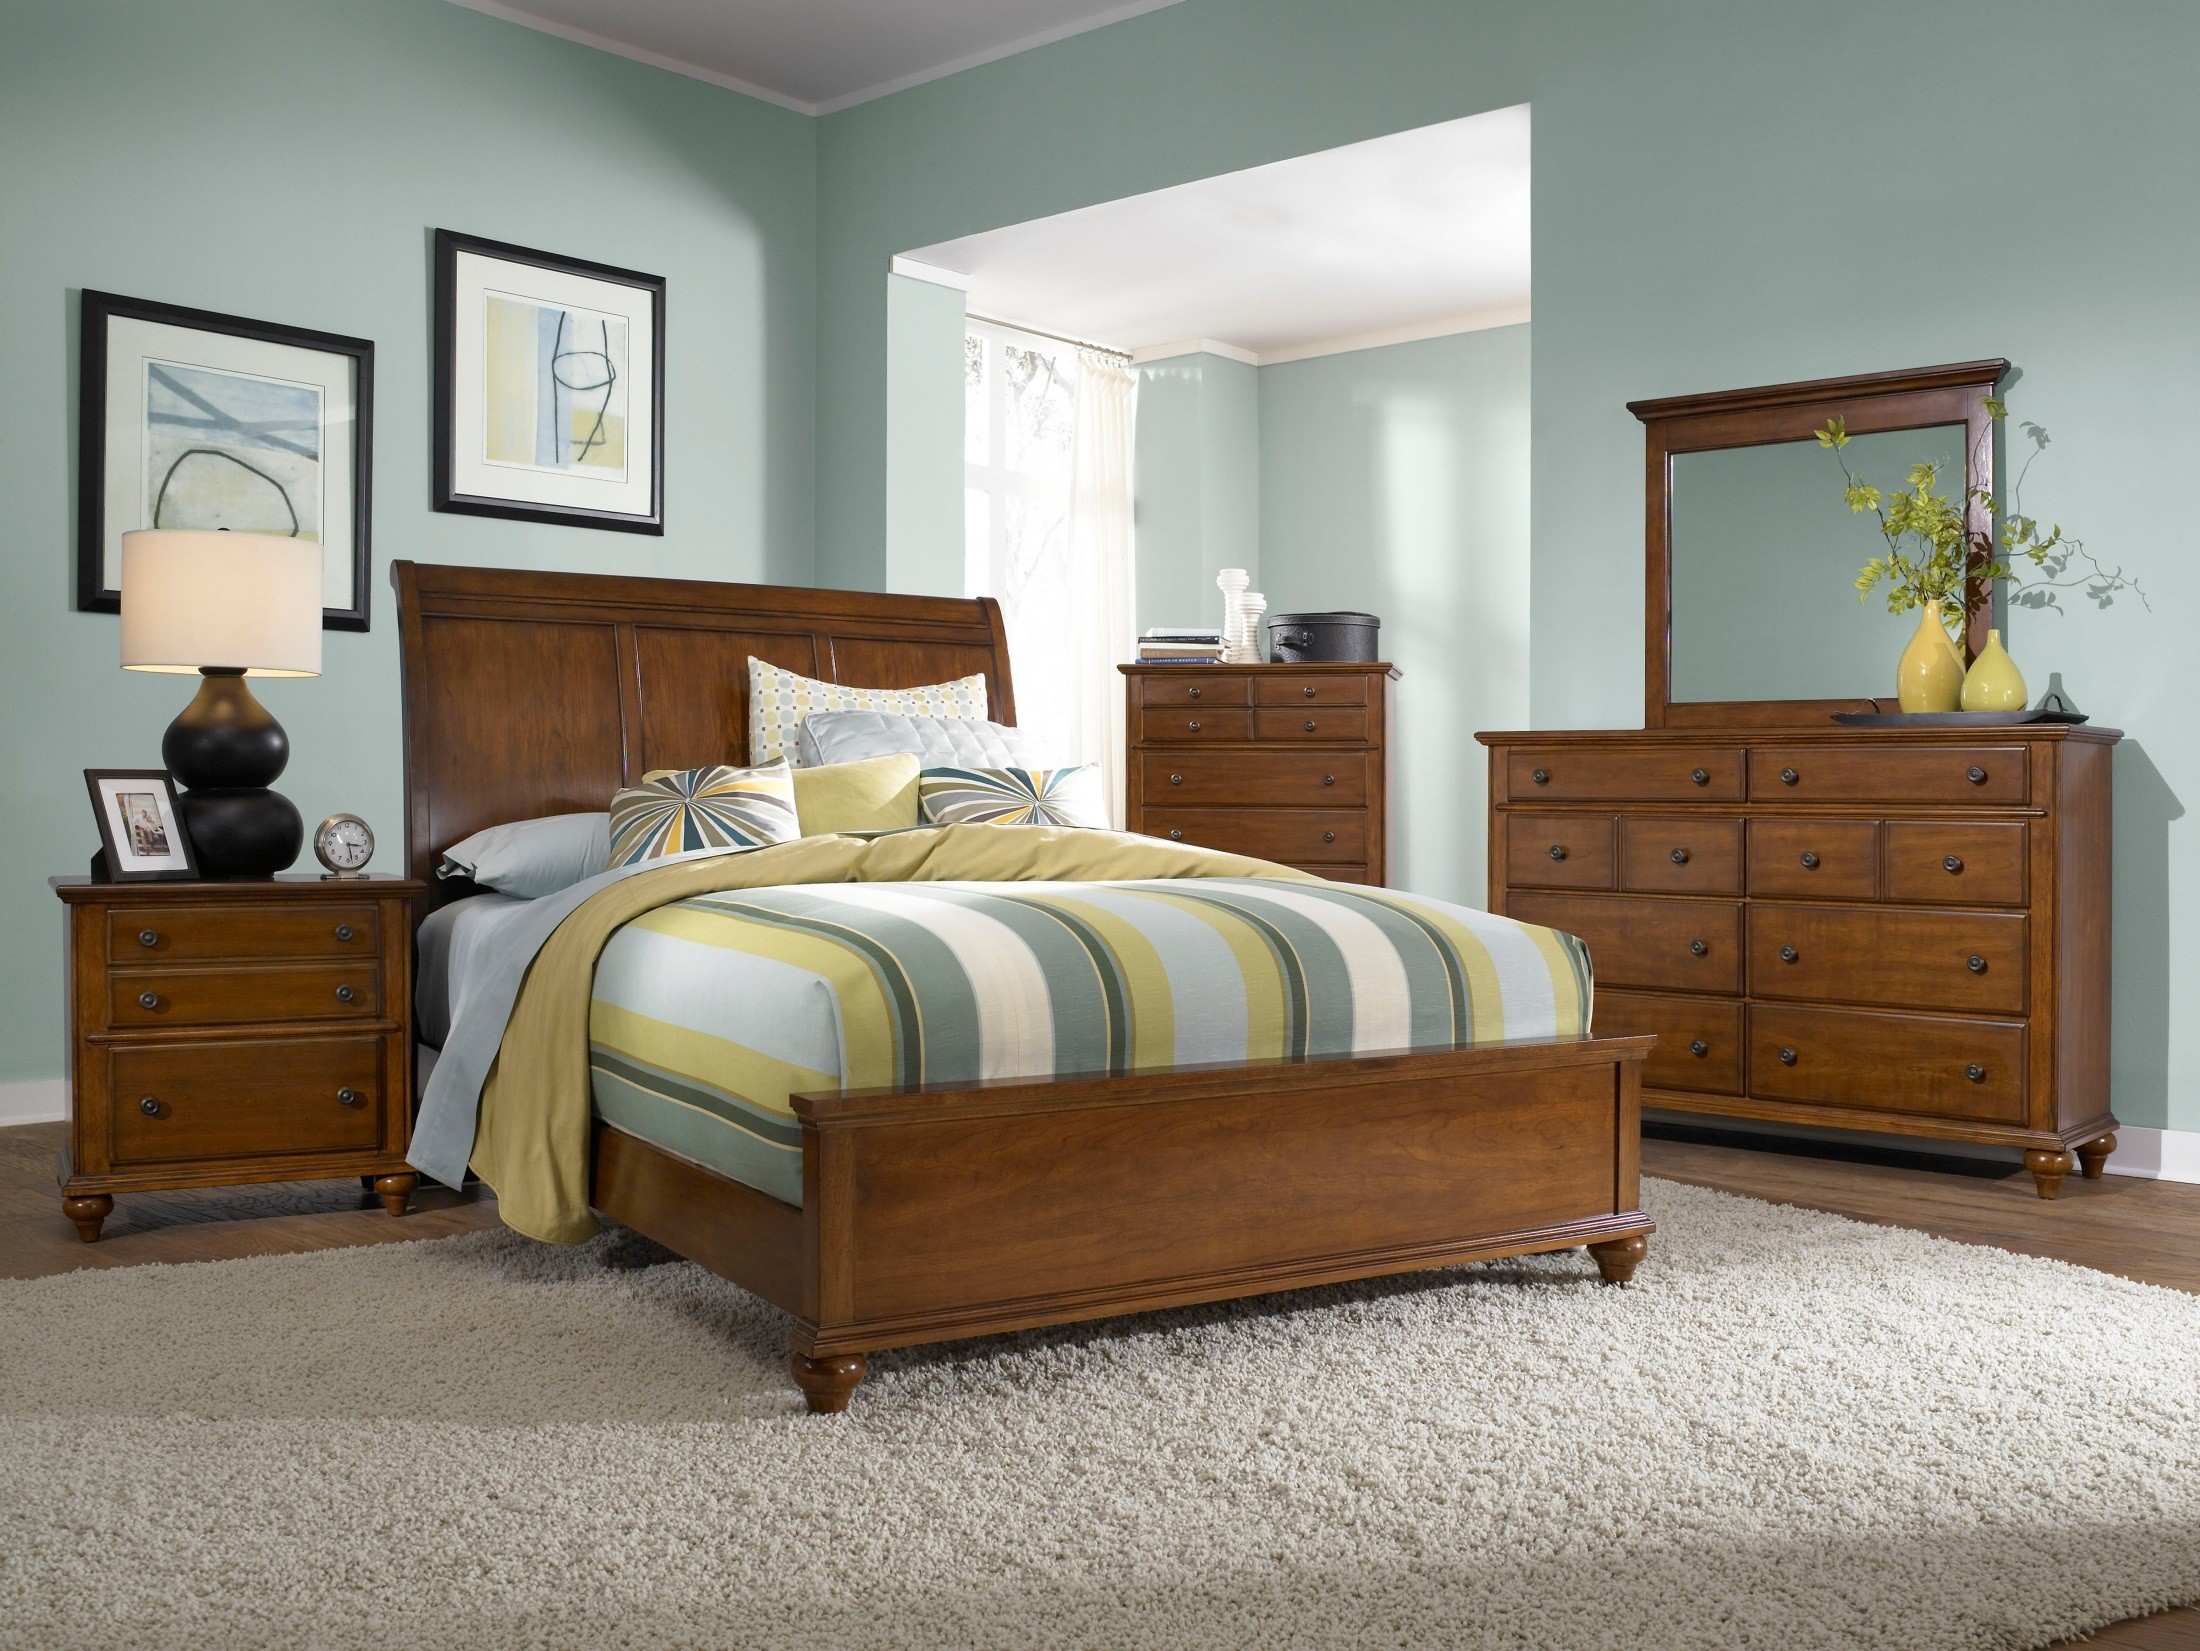 Hayden place light cherry sleigh bedroom set from broyhill - Broyhill hayden place bedroom set ...